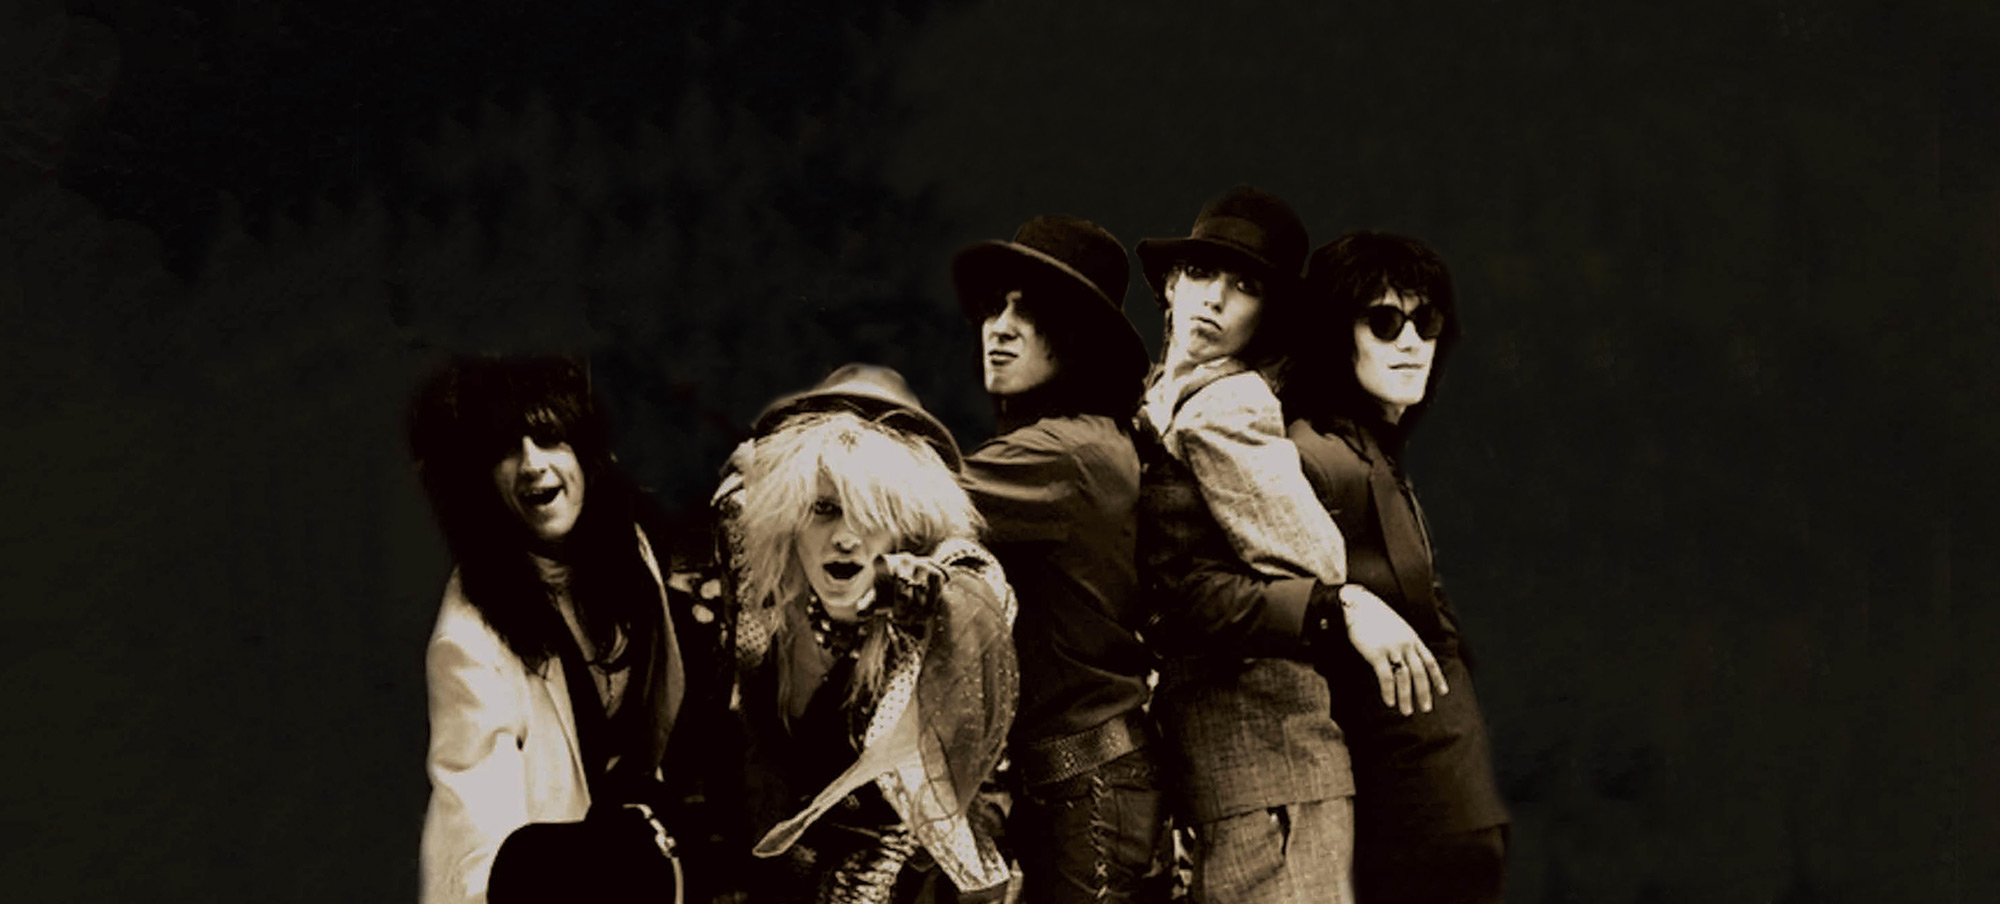 Hanoi Rocks - All Those Wasted Years (Book)